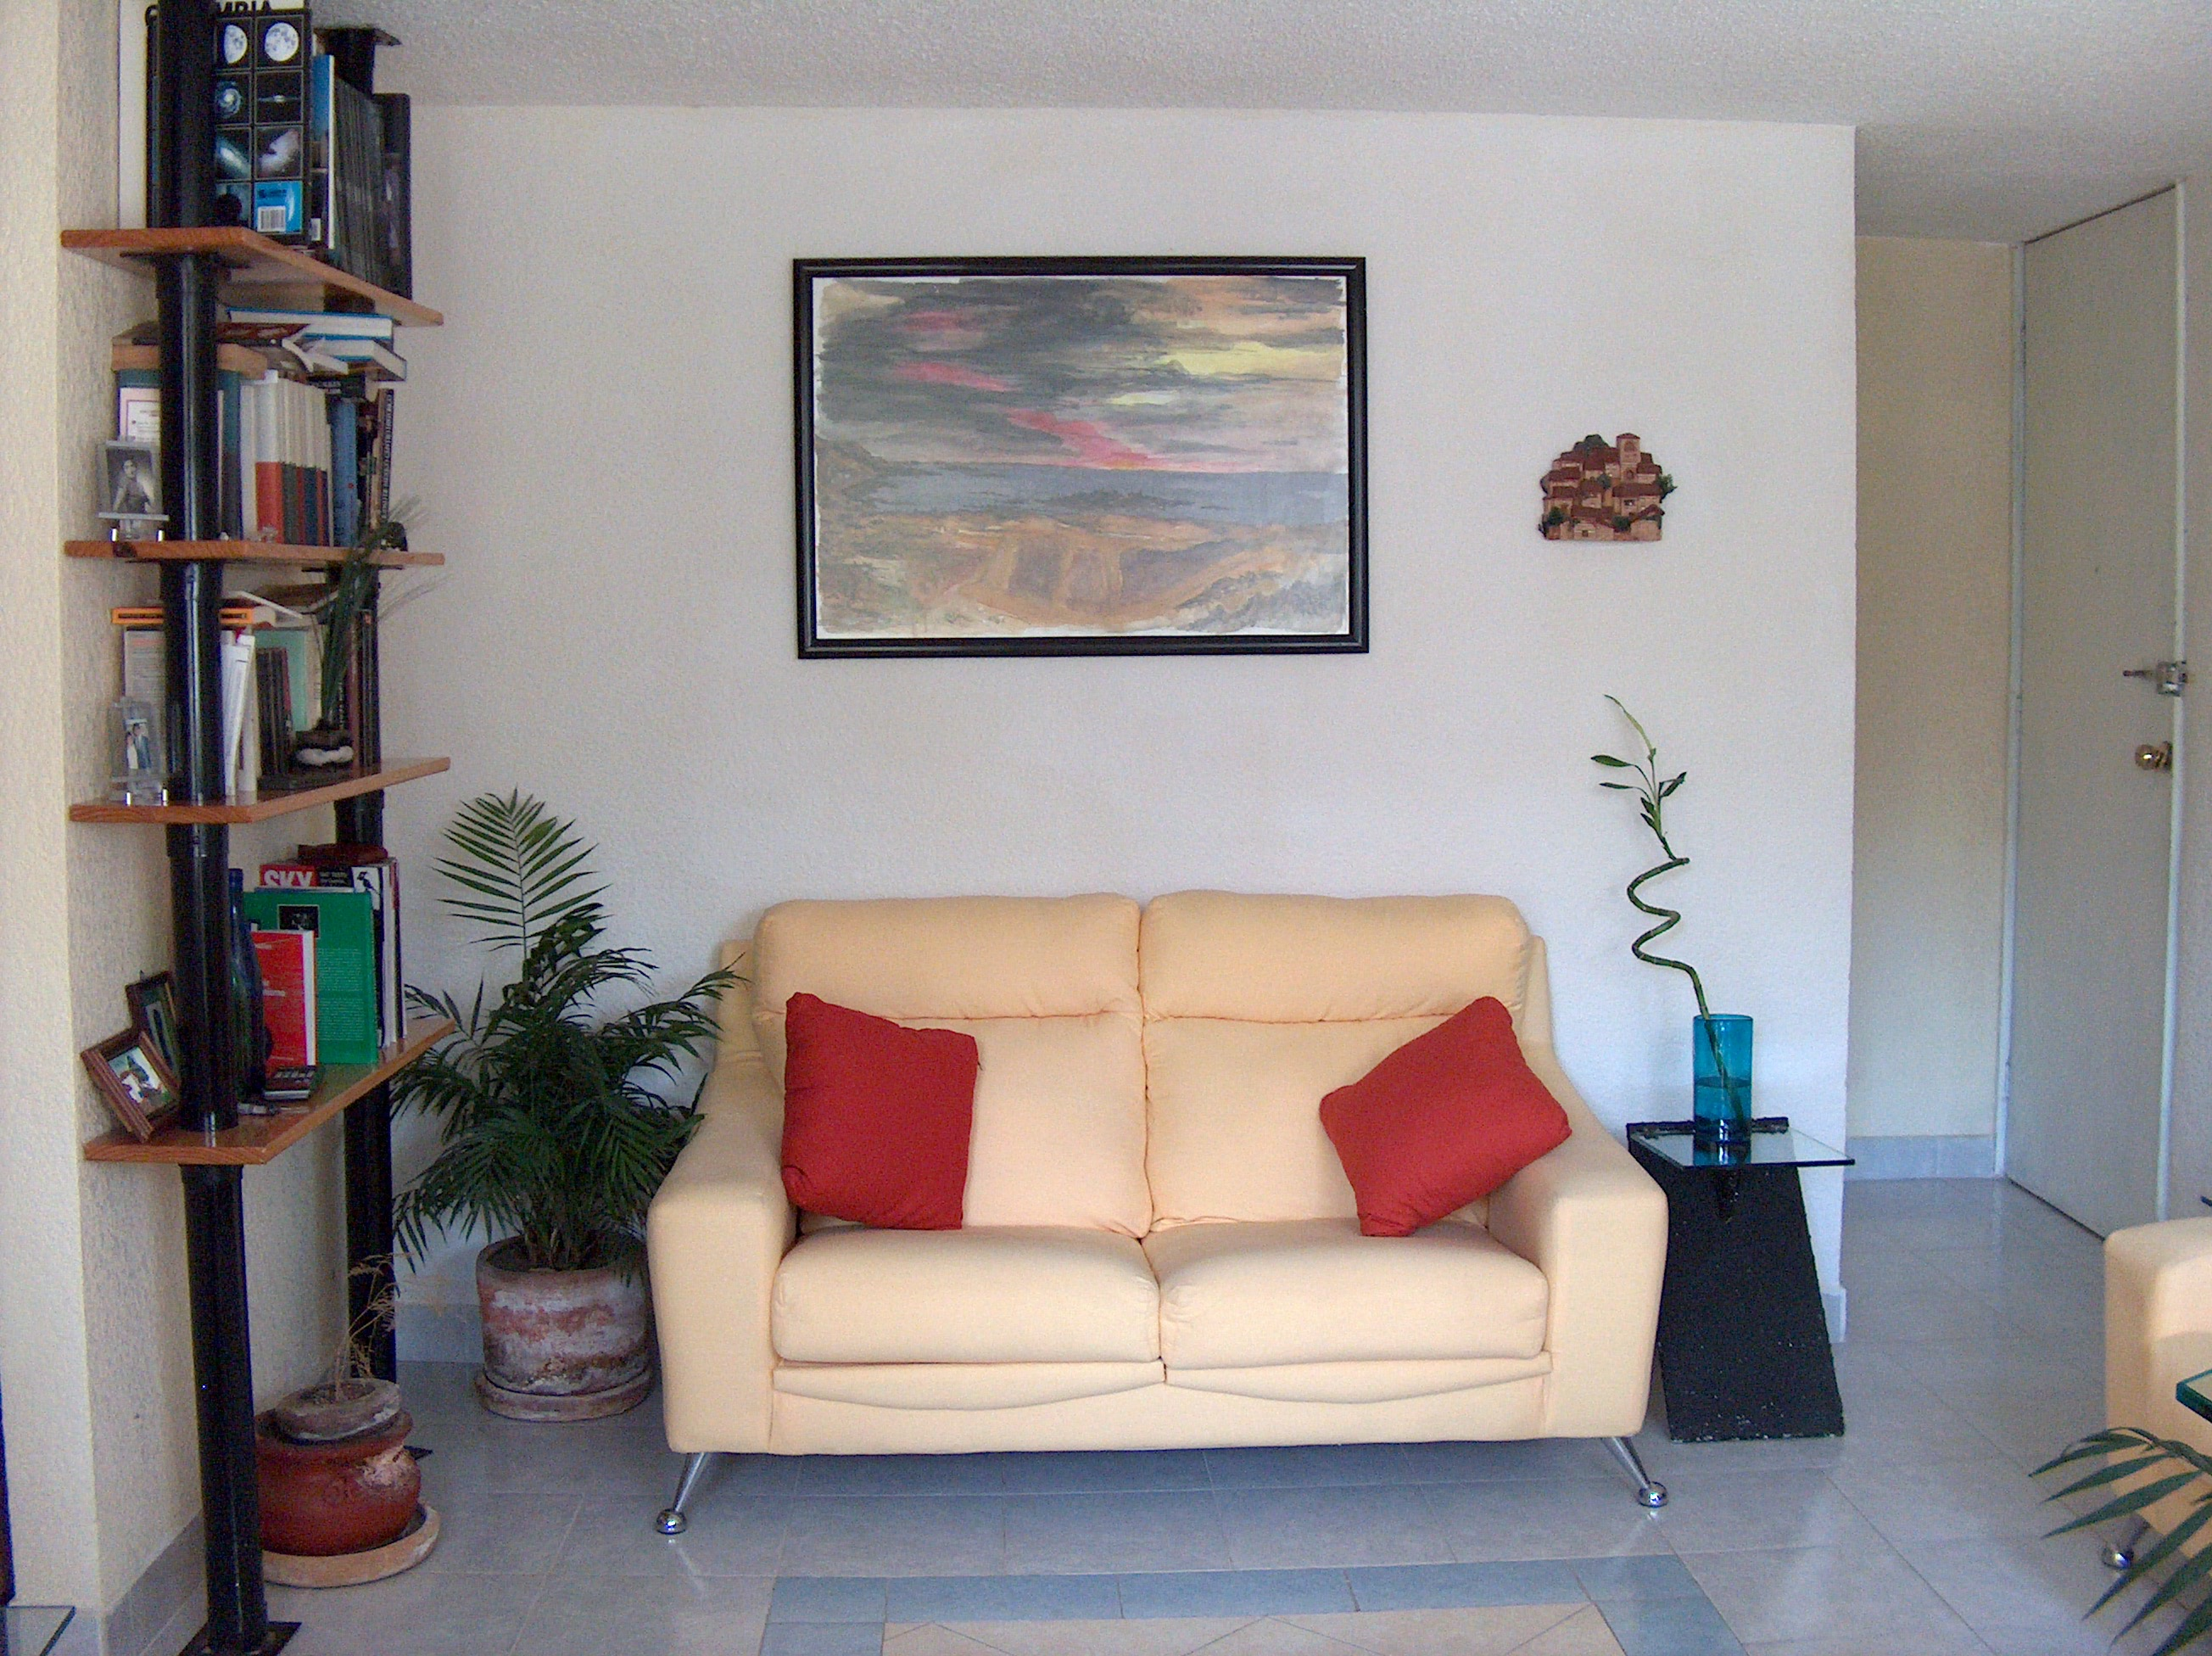 How to enhance a small living room decorating for the artistic soul